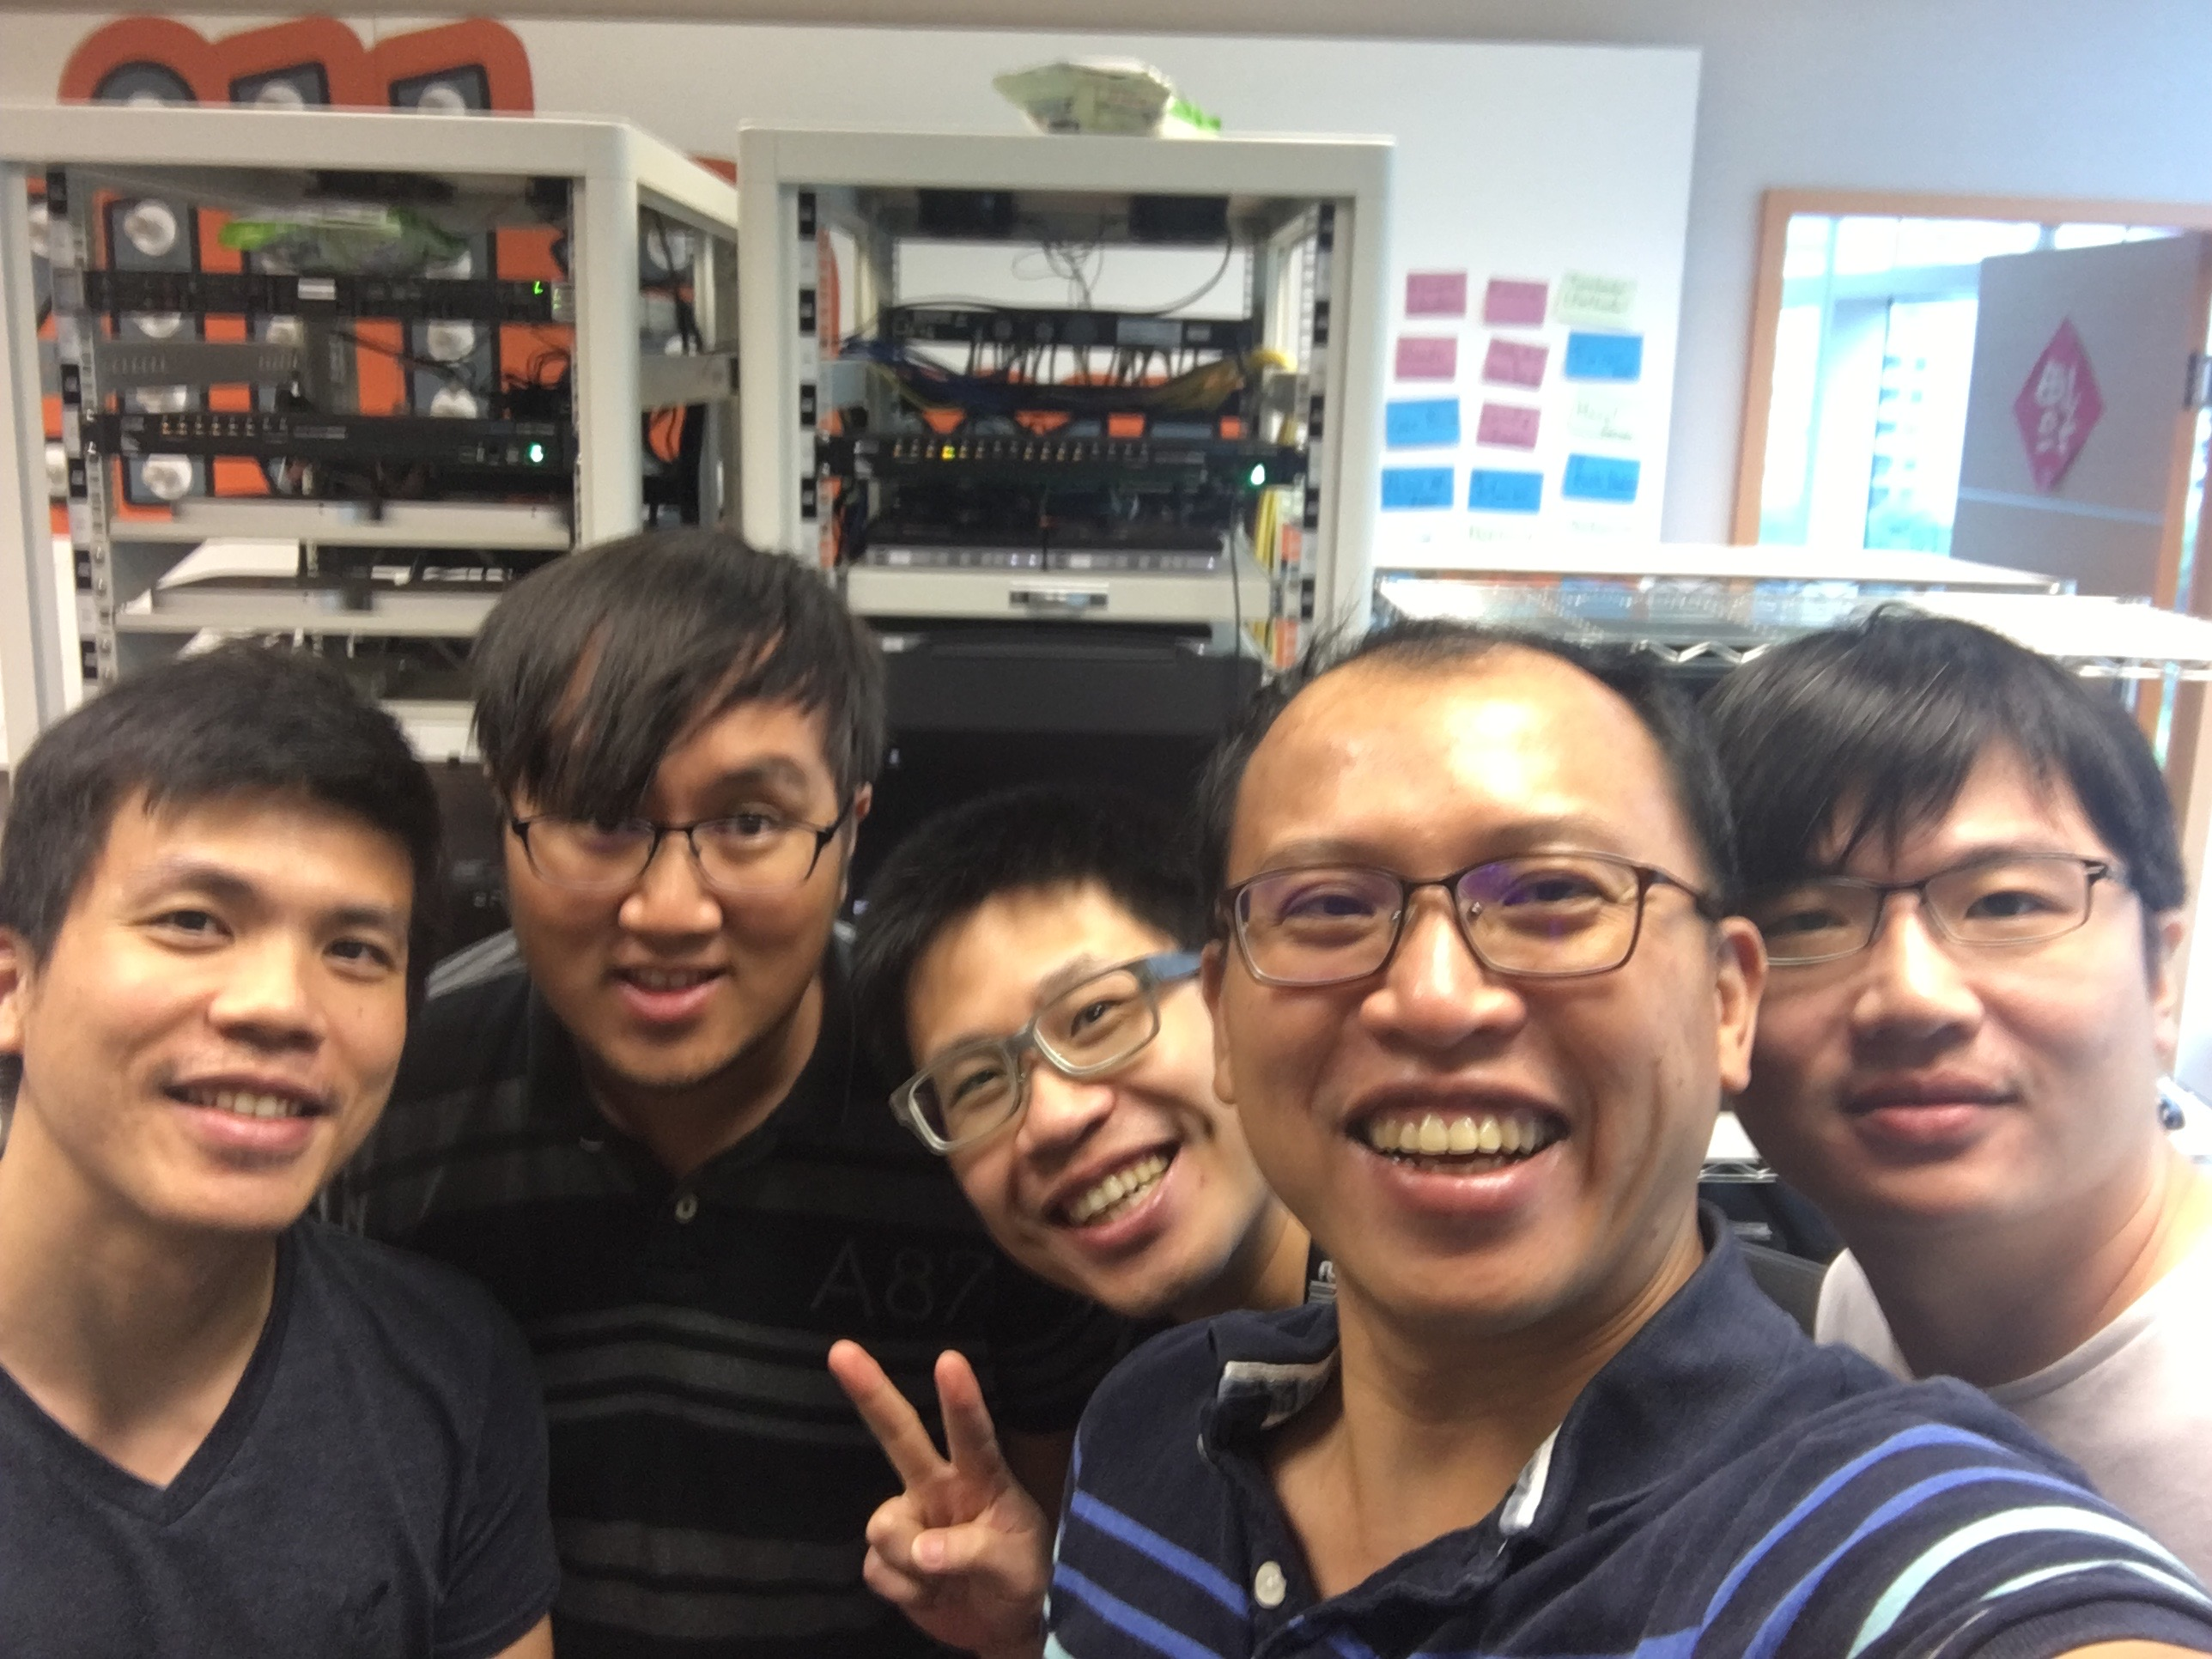 Bobby Chien, Fu-Hung Yen, Mike Lien, Shako Ho, and Walter Chen of the Hasal team